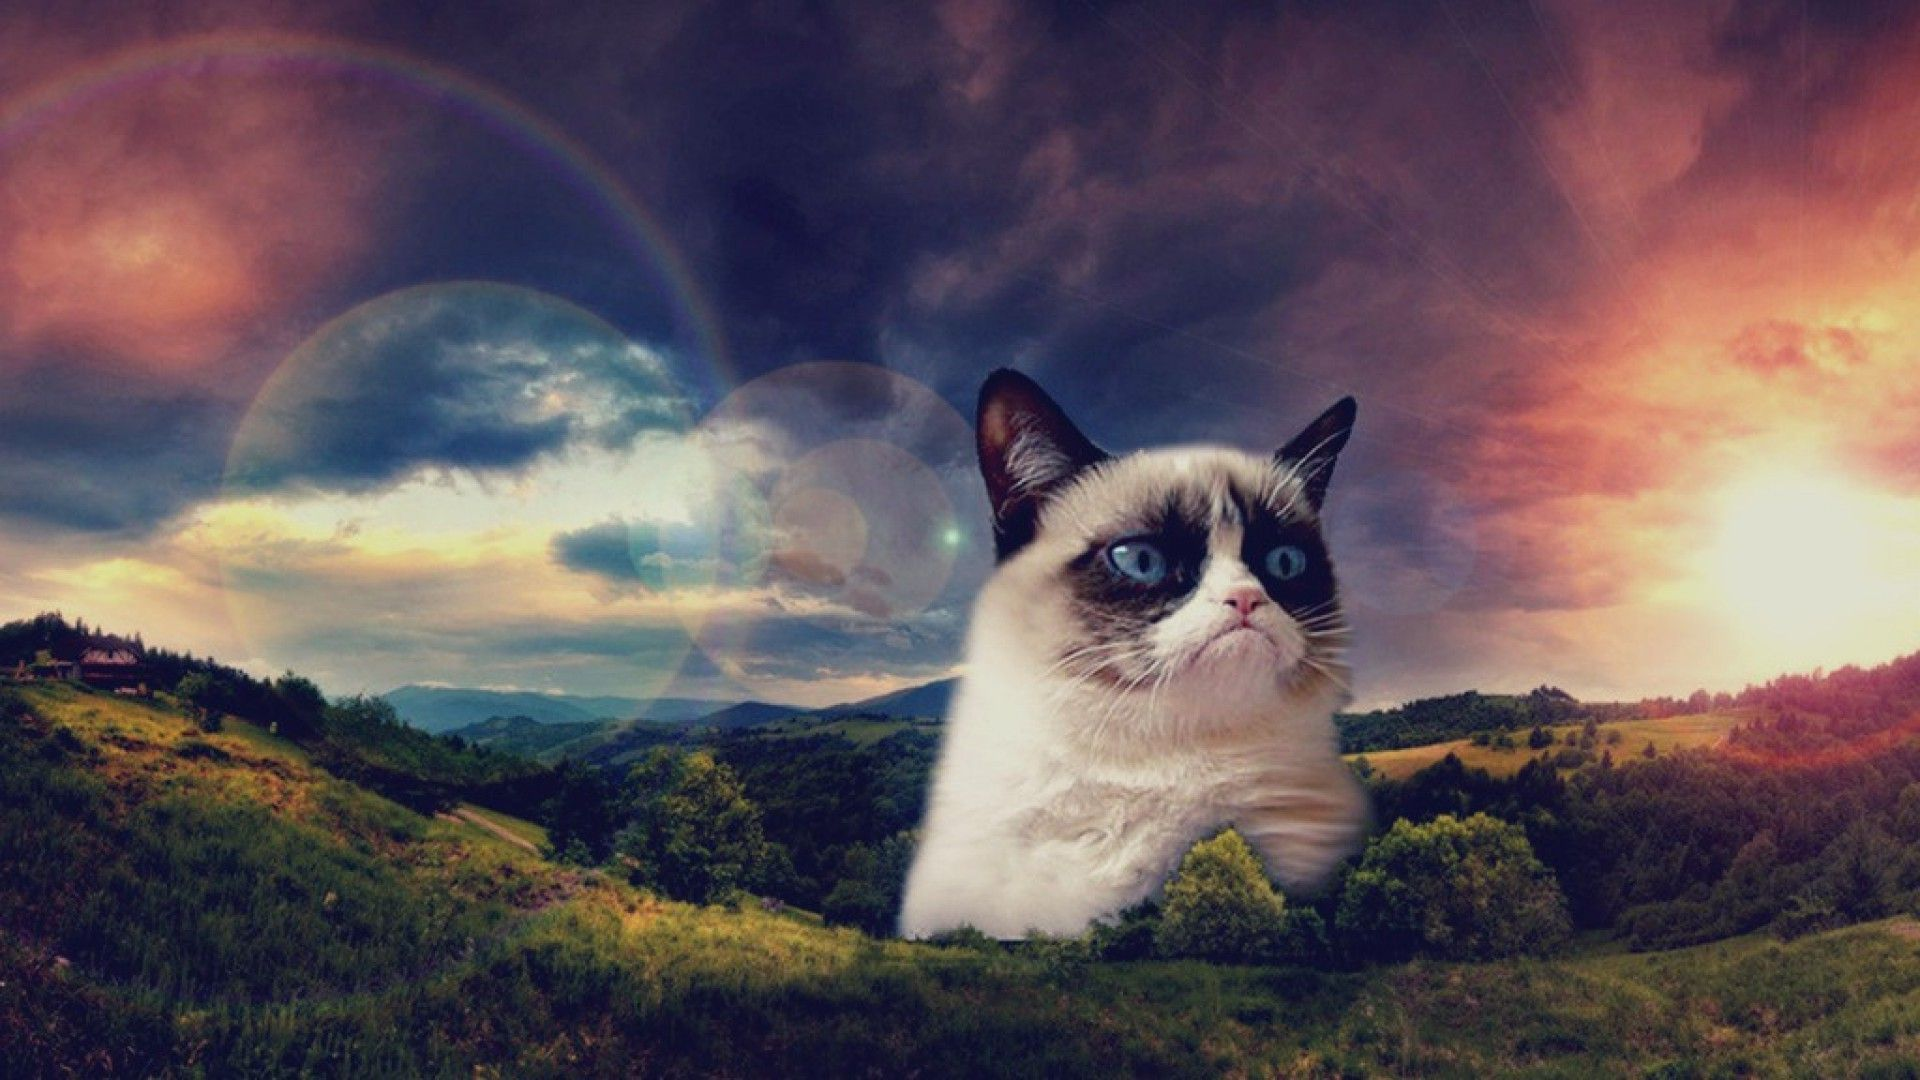 grumpy cat wallpapers high quality | download free